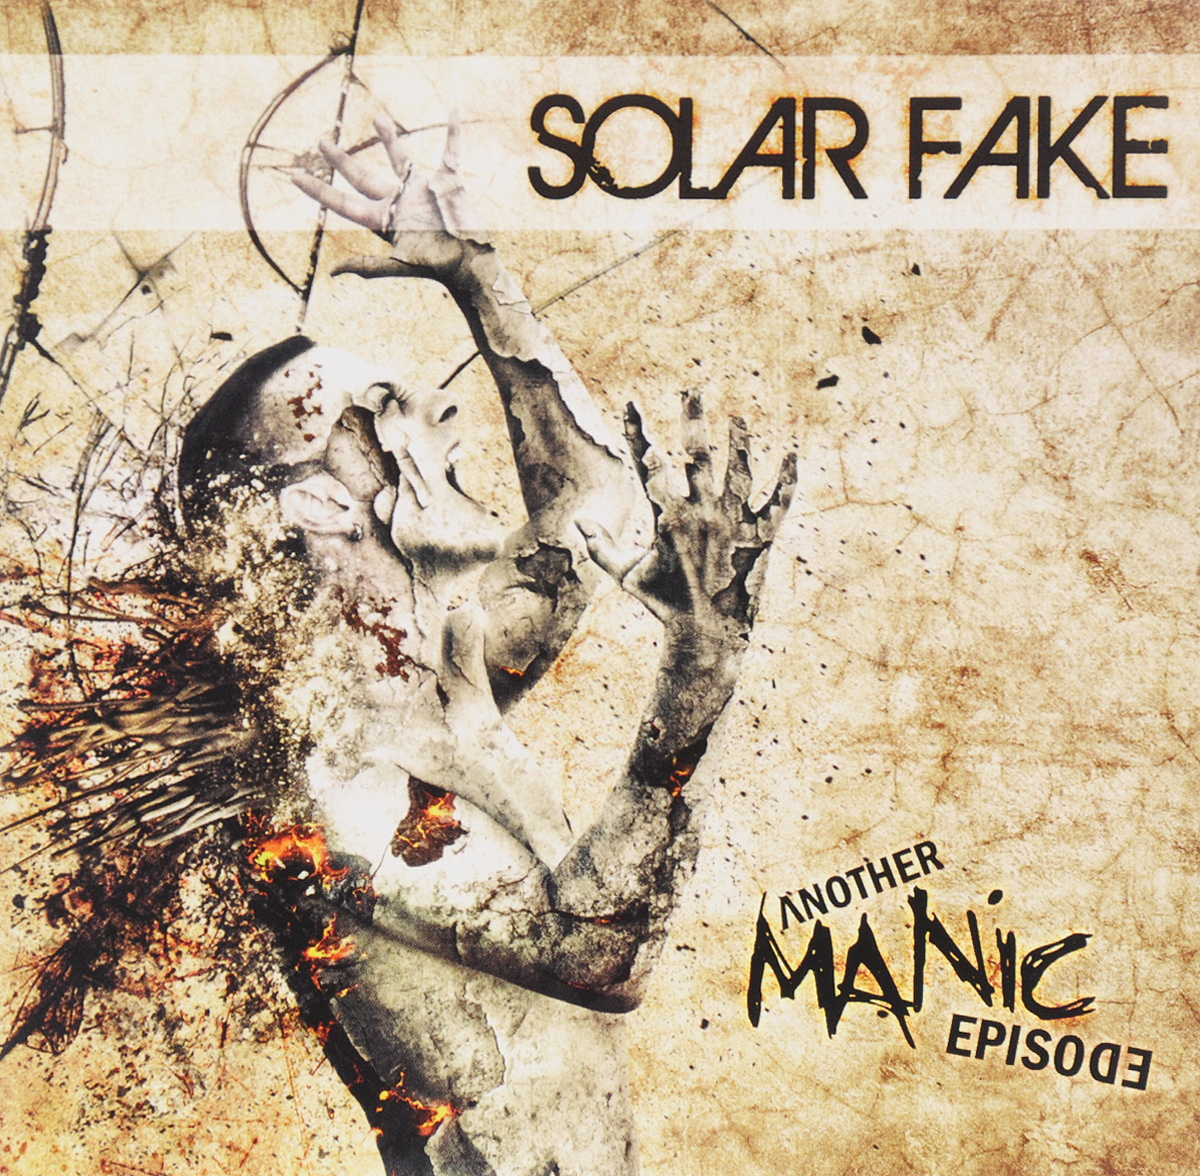 Solar Fake Fake. Another Manic Episode